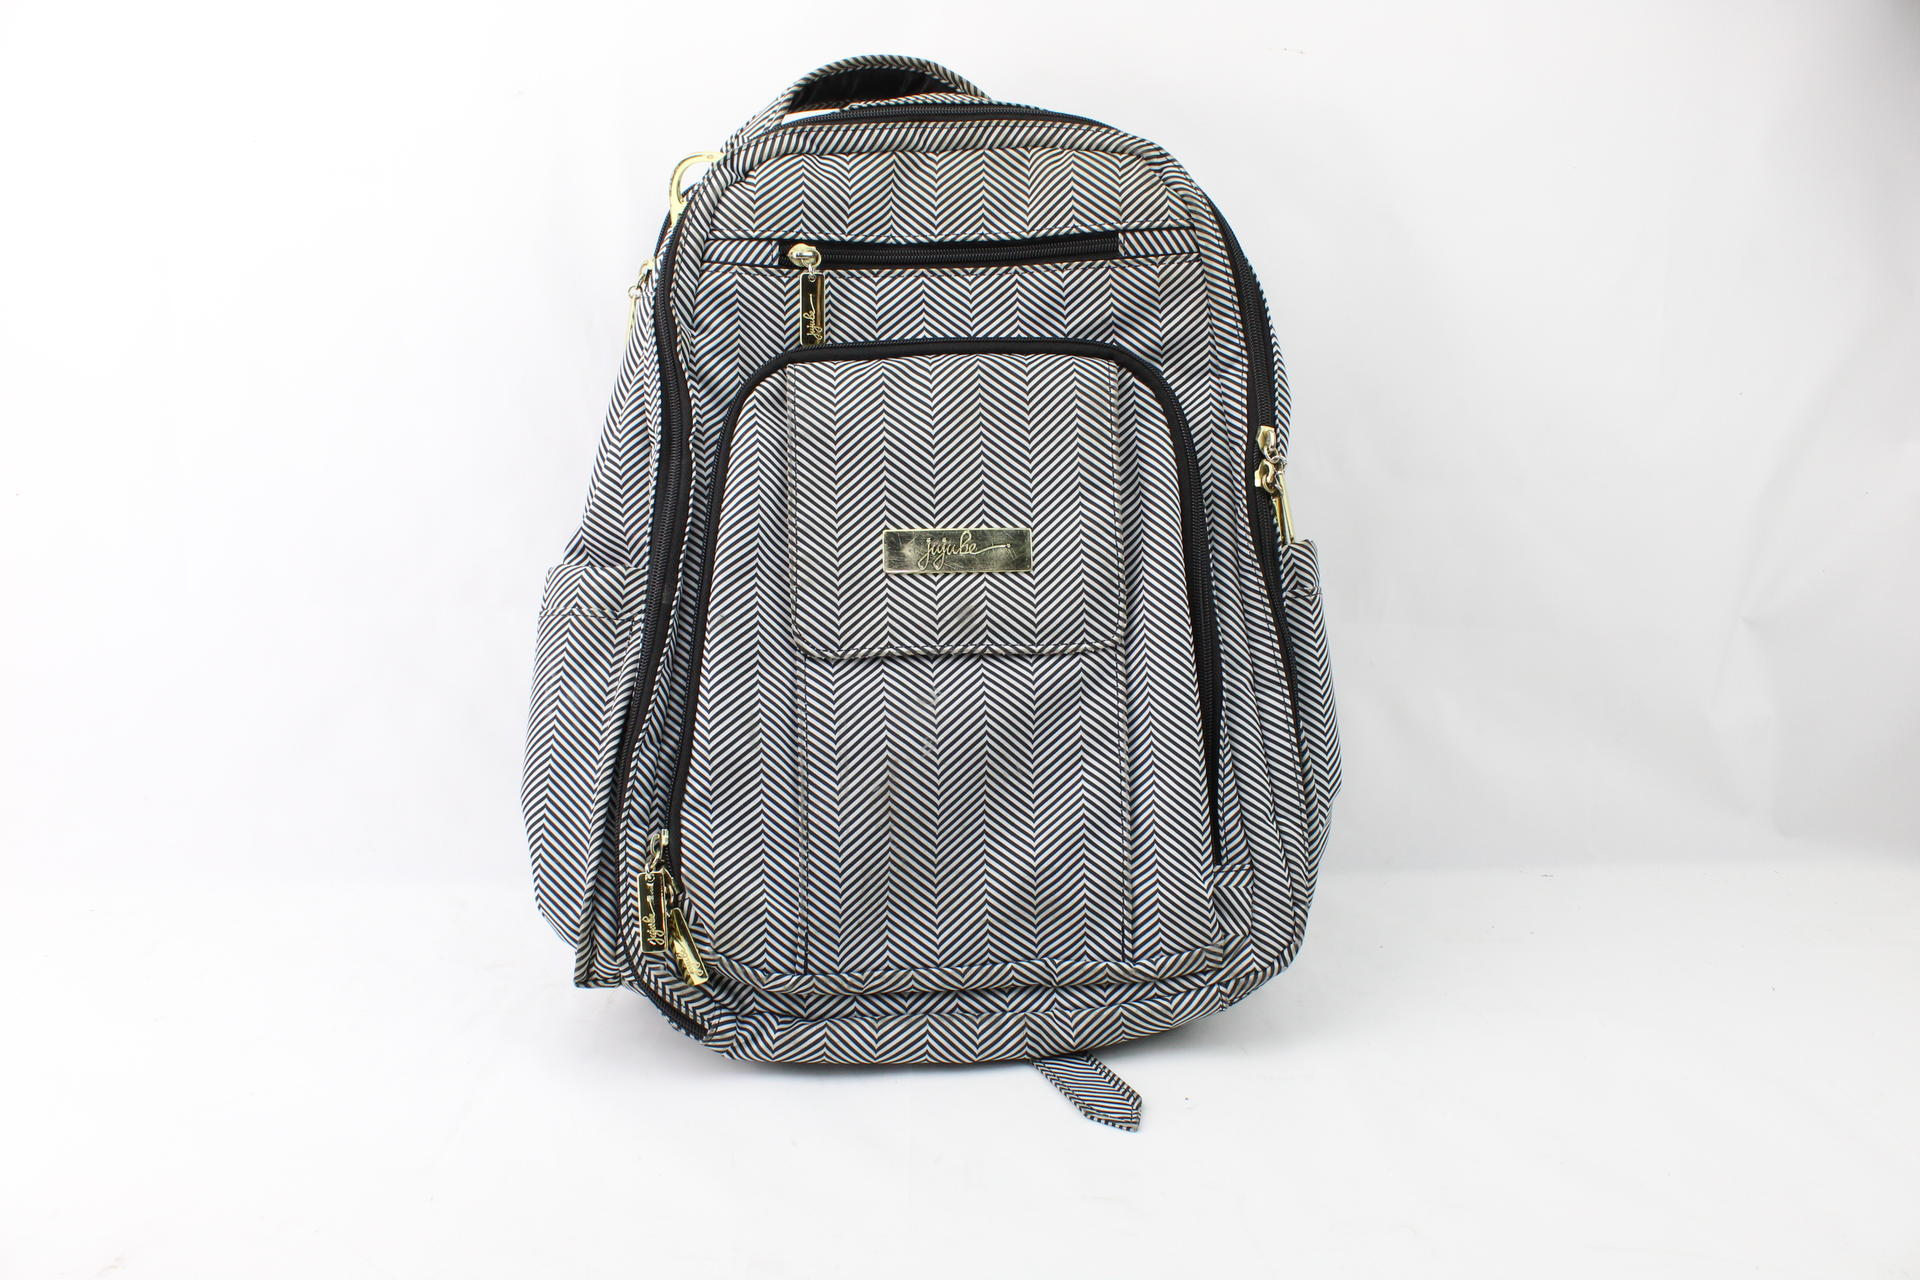 a1cc48f832bd Details about JuJuBe Be Right Back Multi-Functional Structured  Backpack/Diaper Bag Black/White